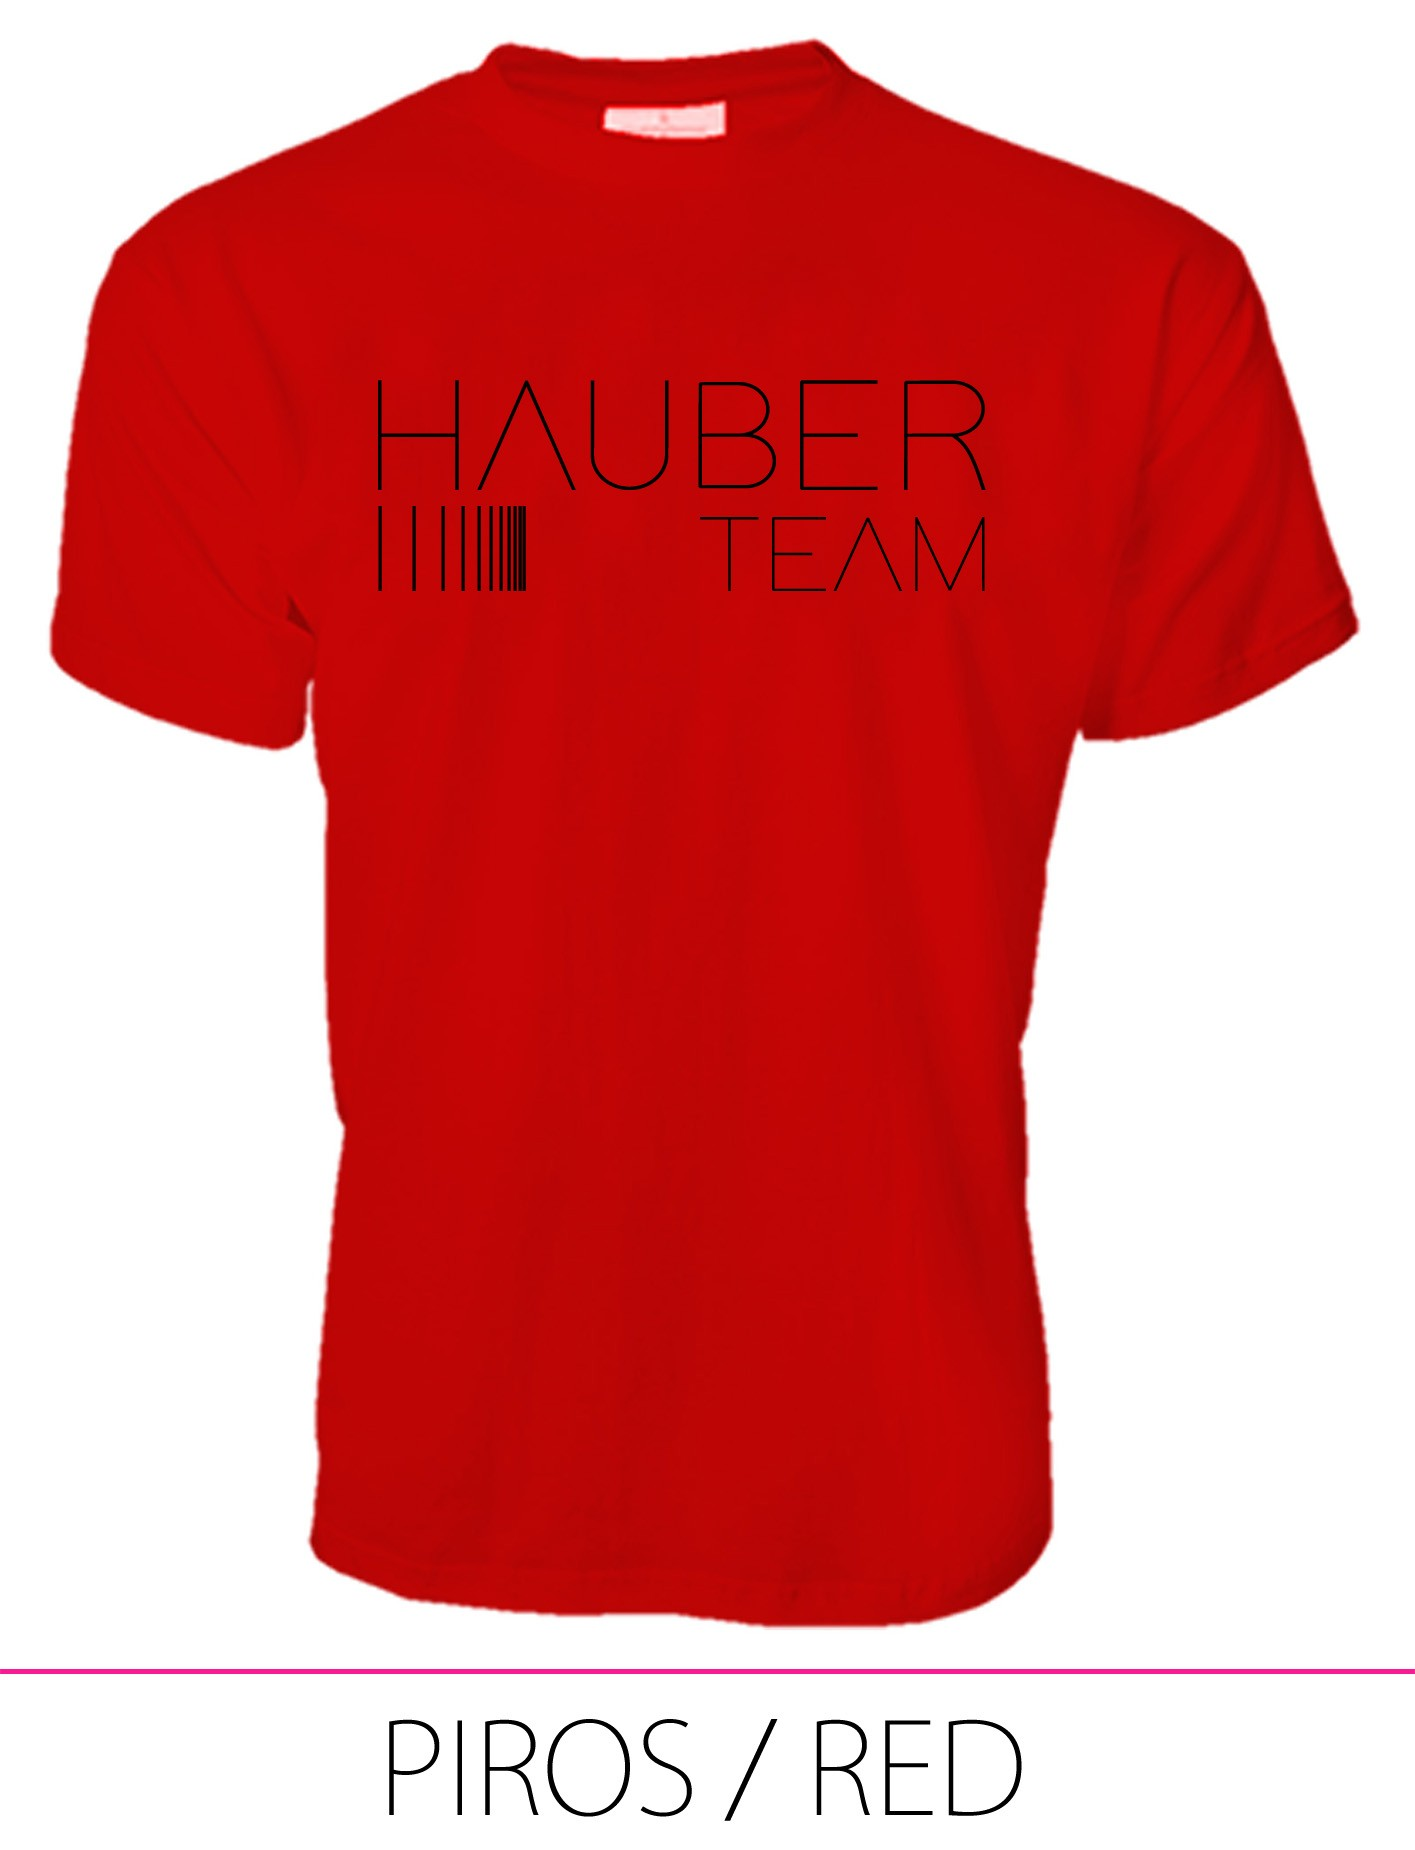 MEN CREW NECK T-SHIRT / HAUBER TEAM RED